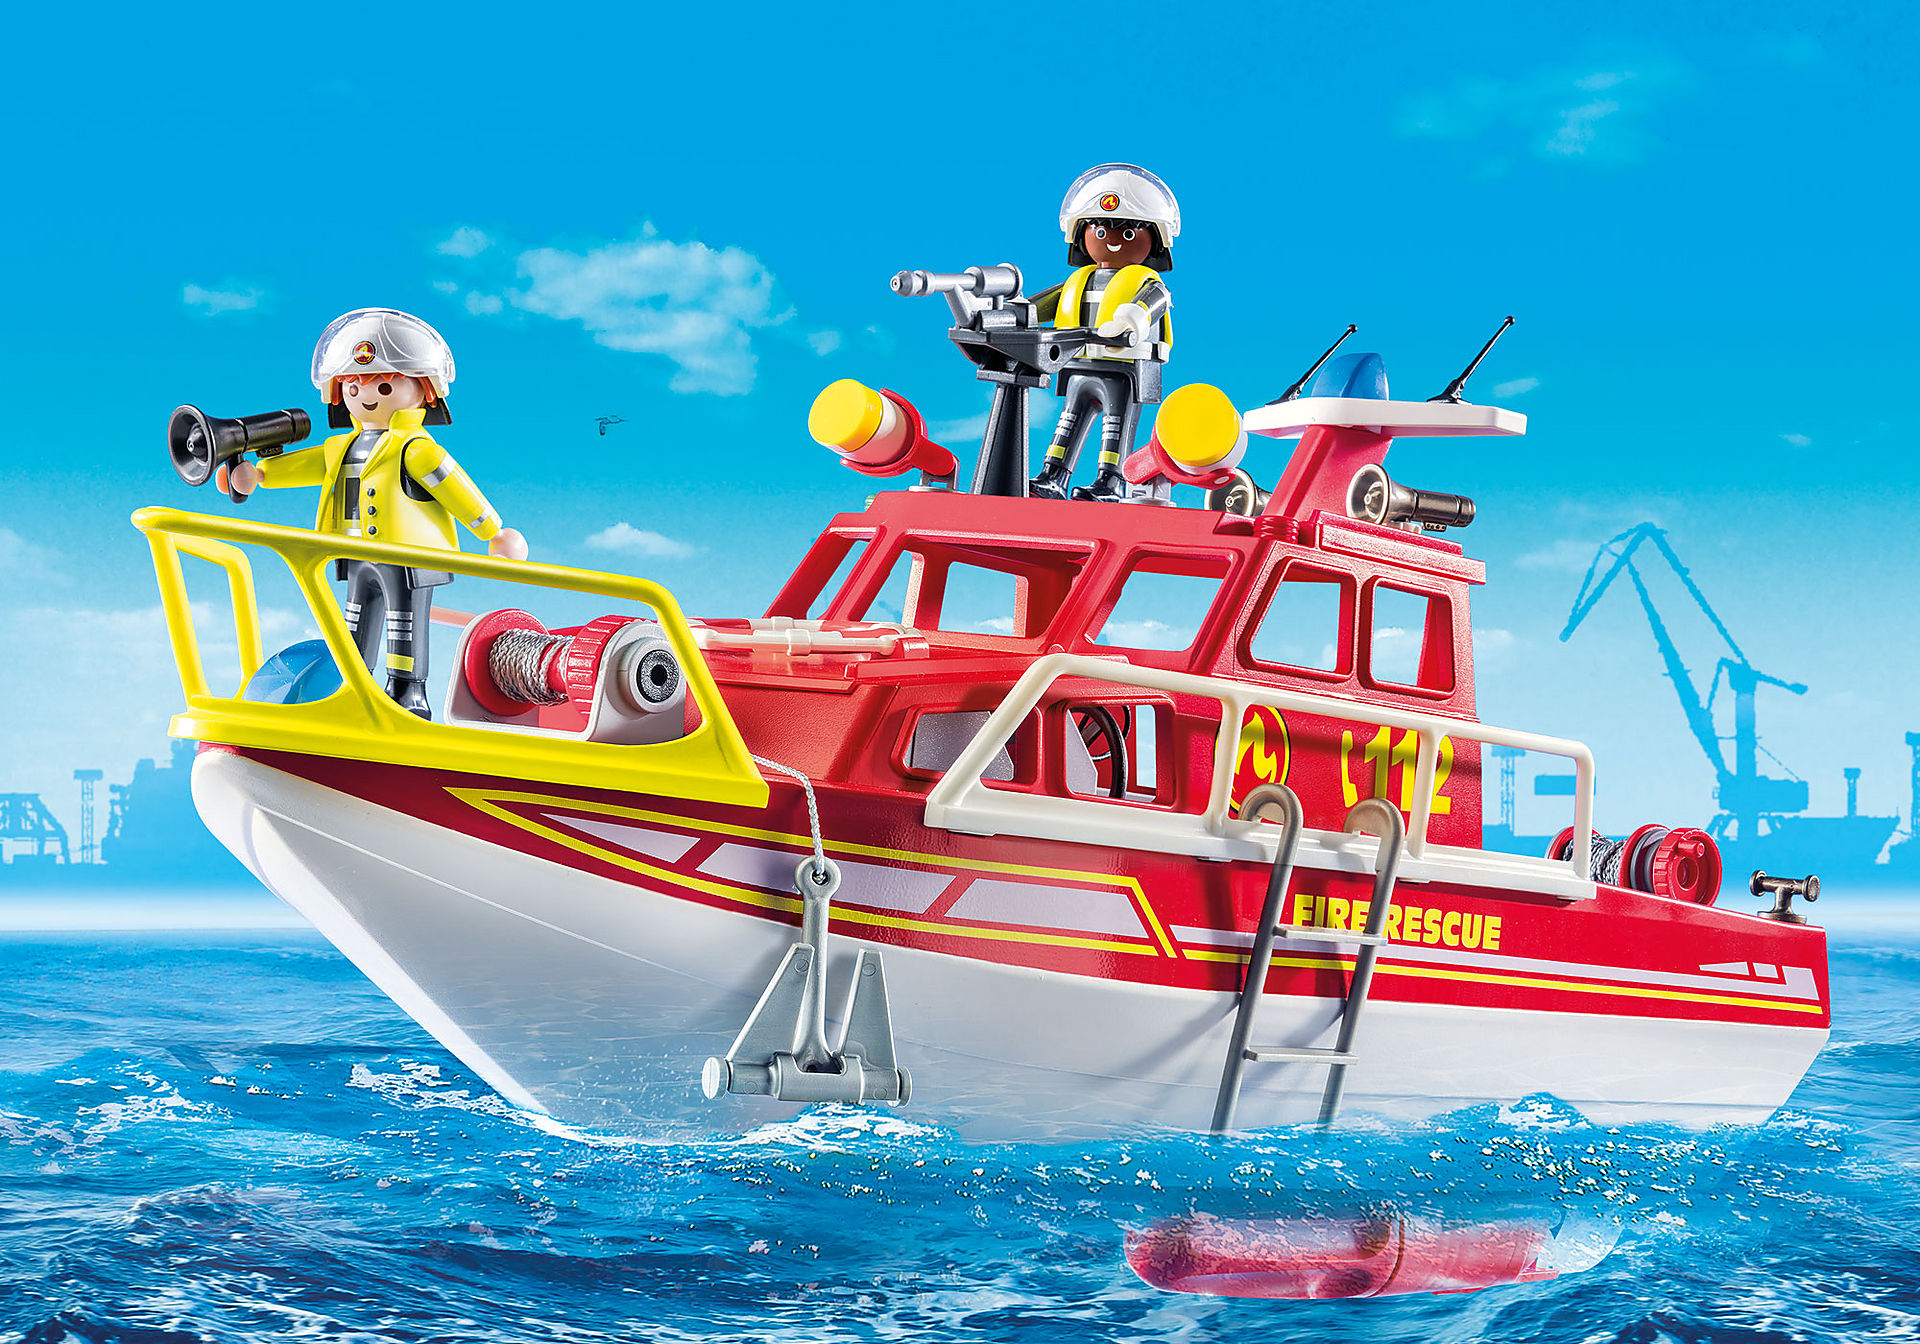 http://media.playmobil.com/i/playmobil/70147_product_detail/Fire Rescue Boat